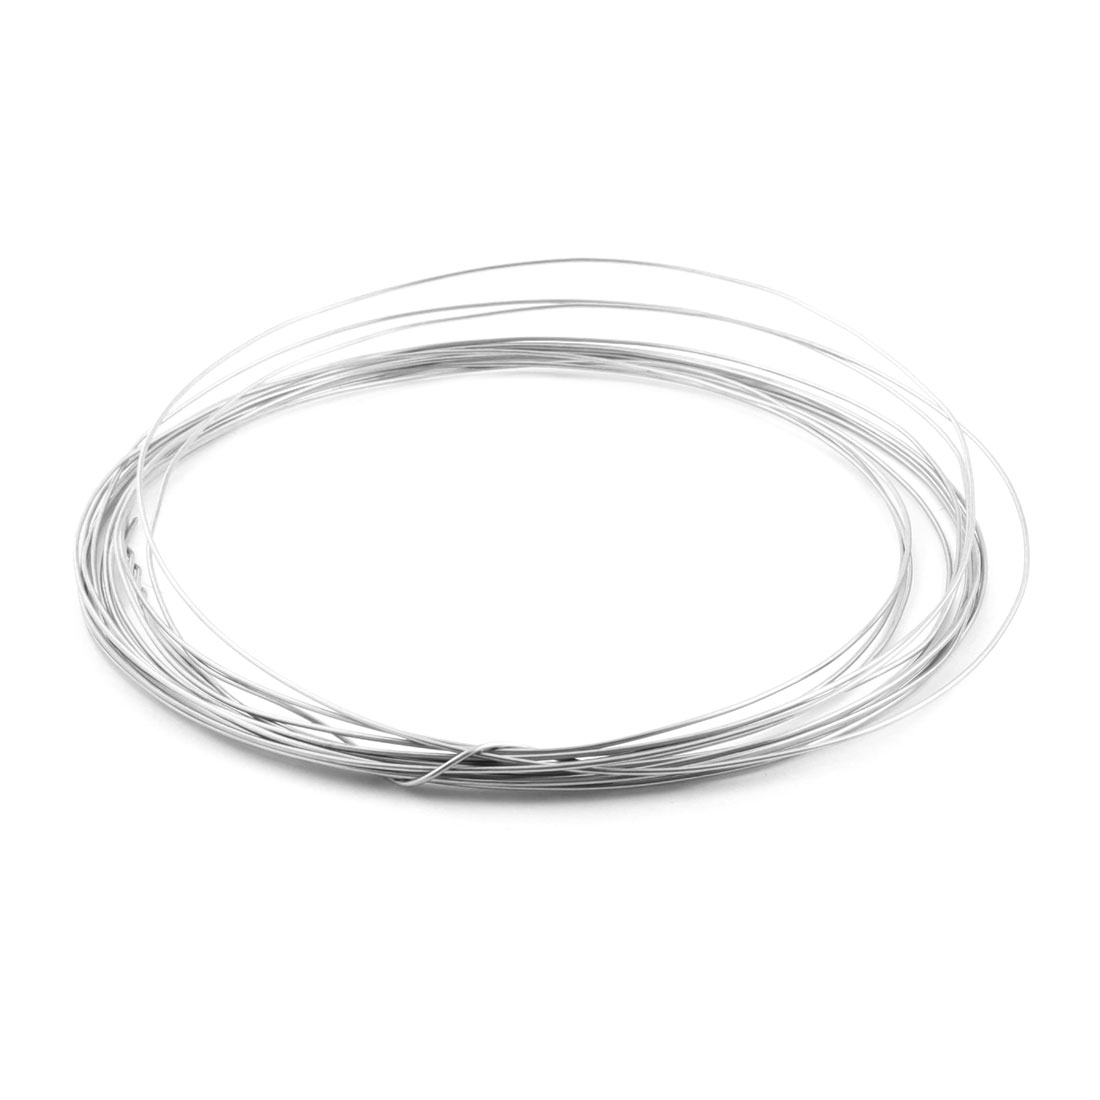 7.5Merter 25ft Long 1.2mm AWG17 Gauge Nichrome Resistance Heating Coils Resistor Wire Cable